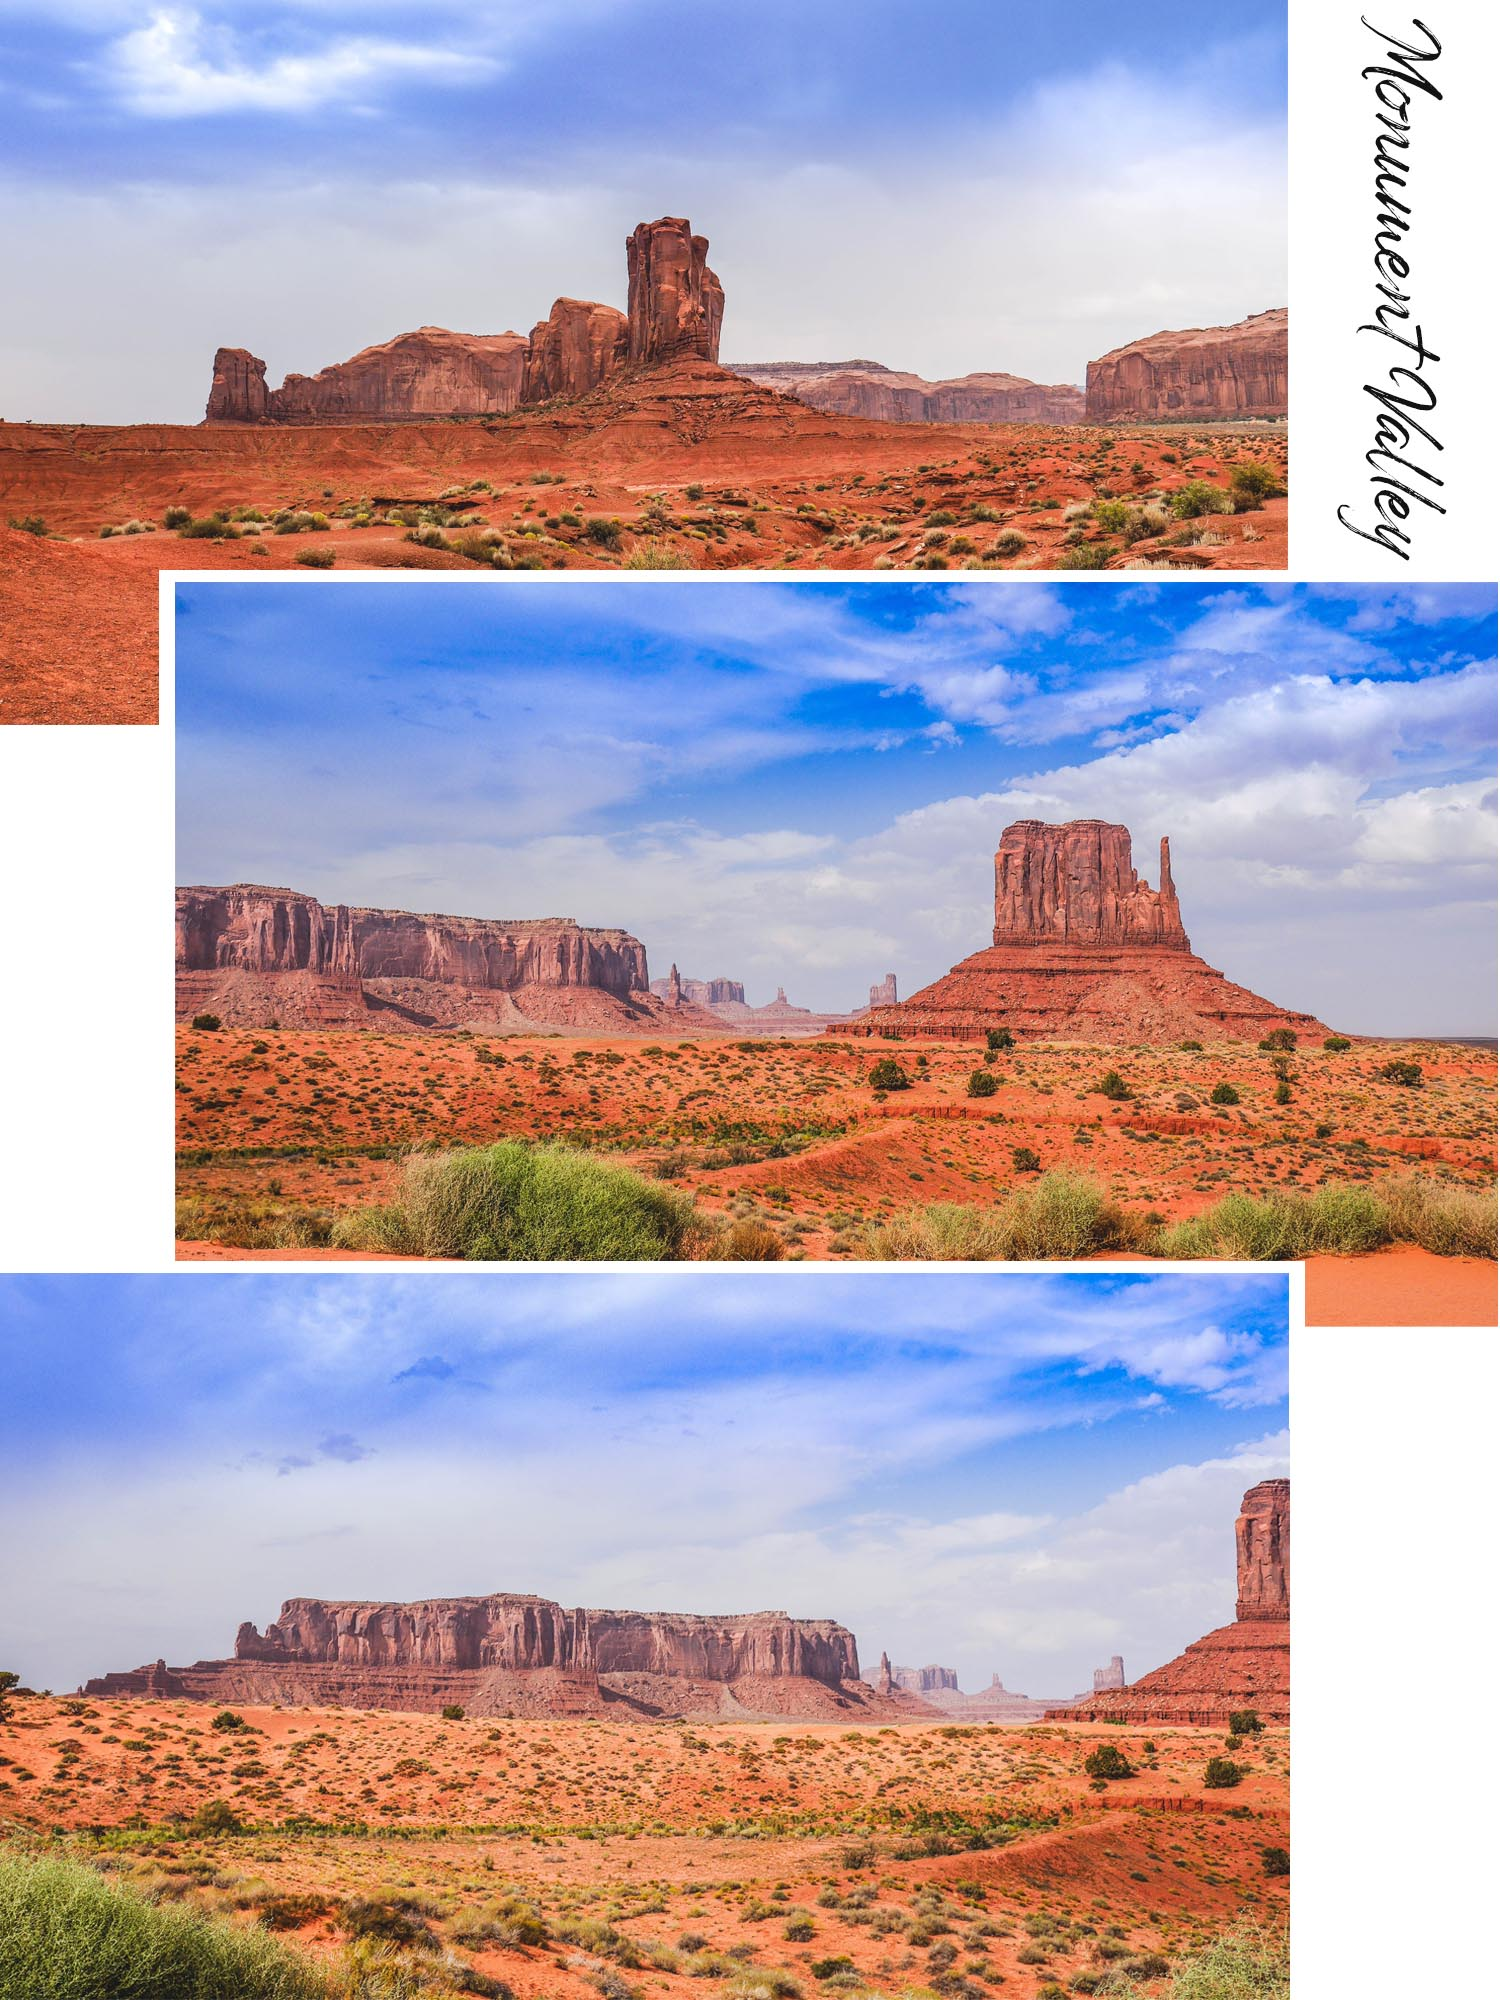 Monument Valley, aux confins de l'Arizona et de l'Utah